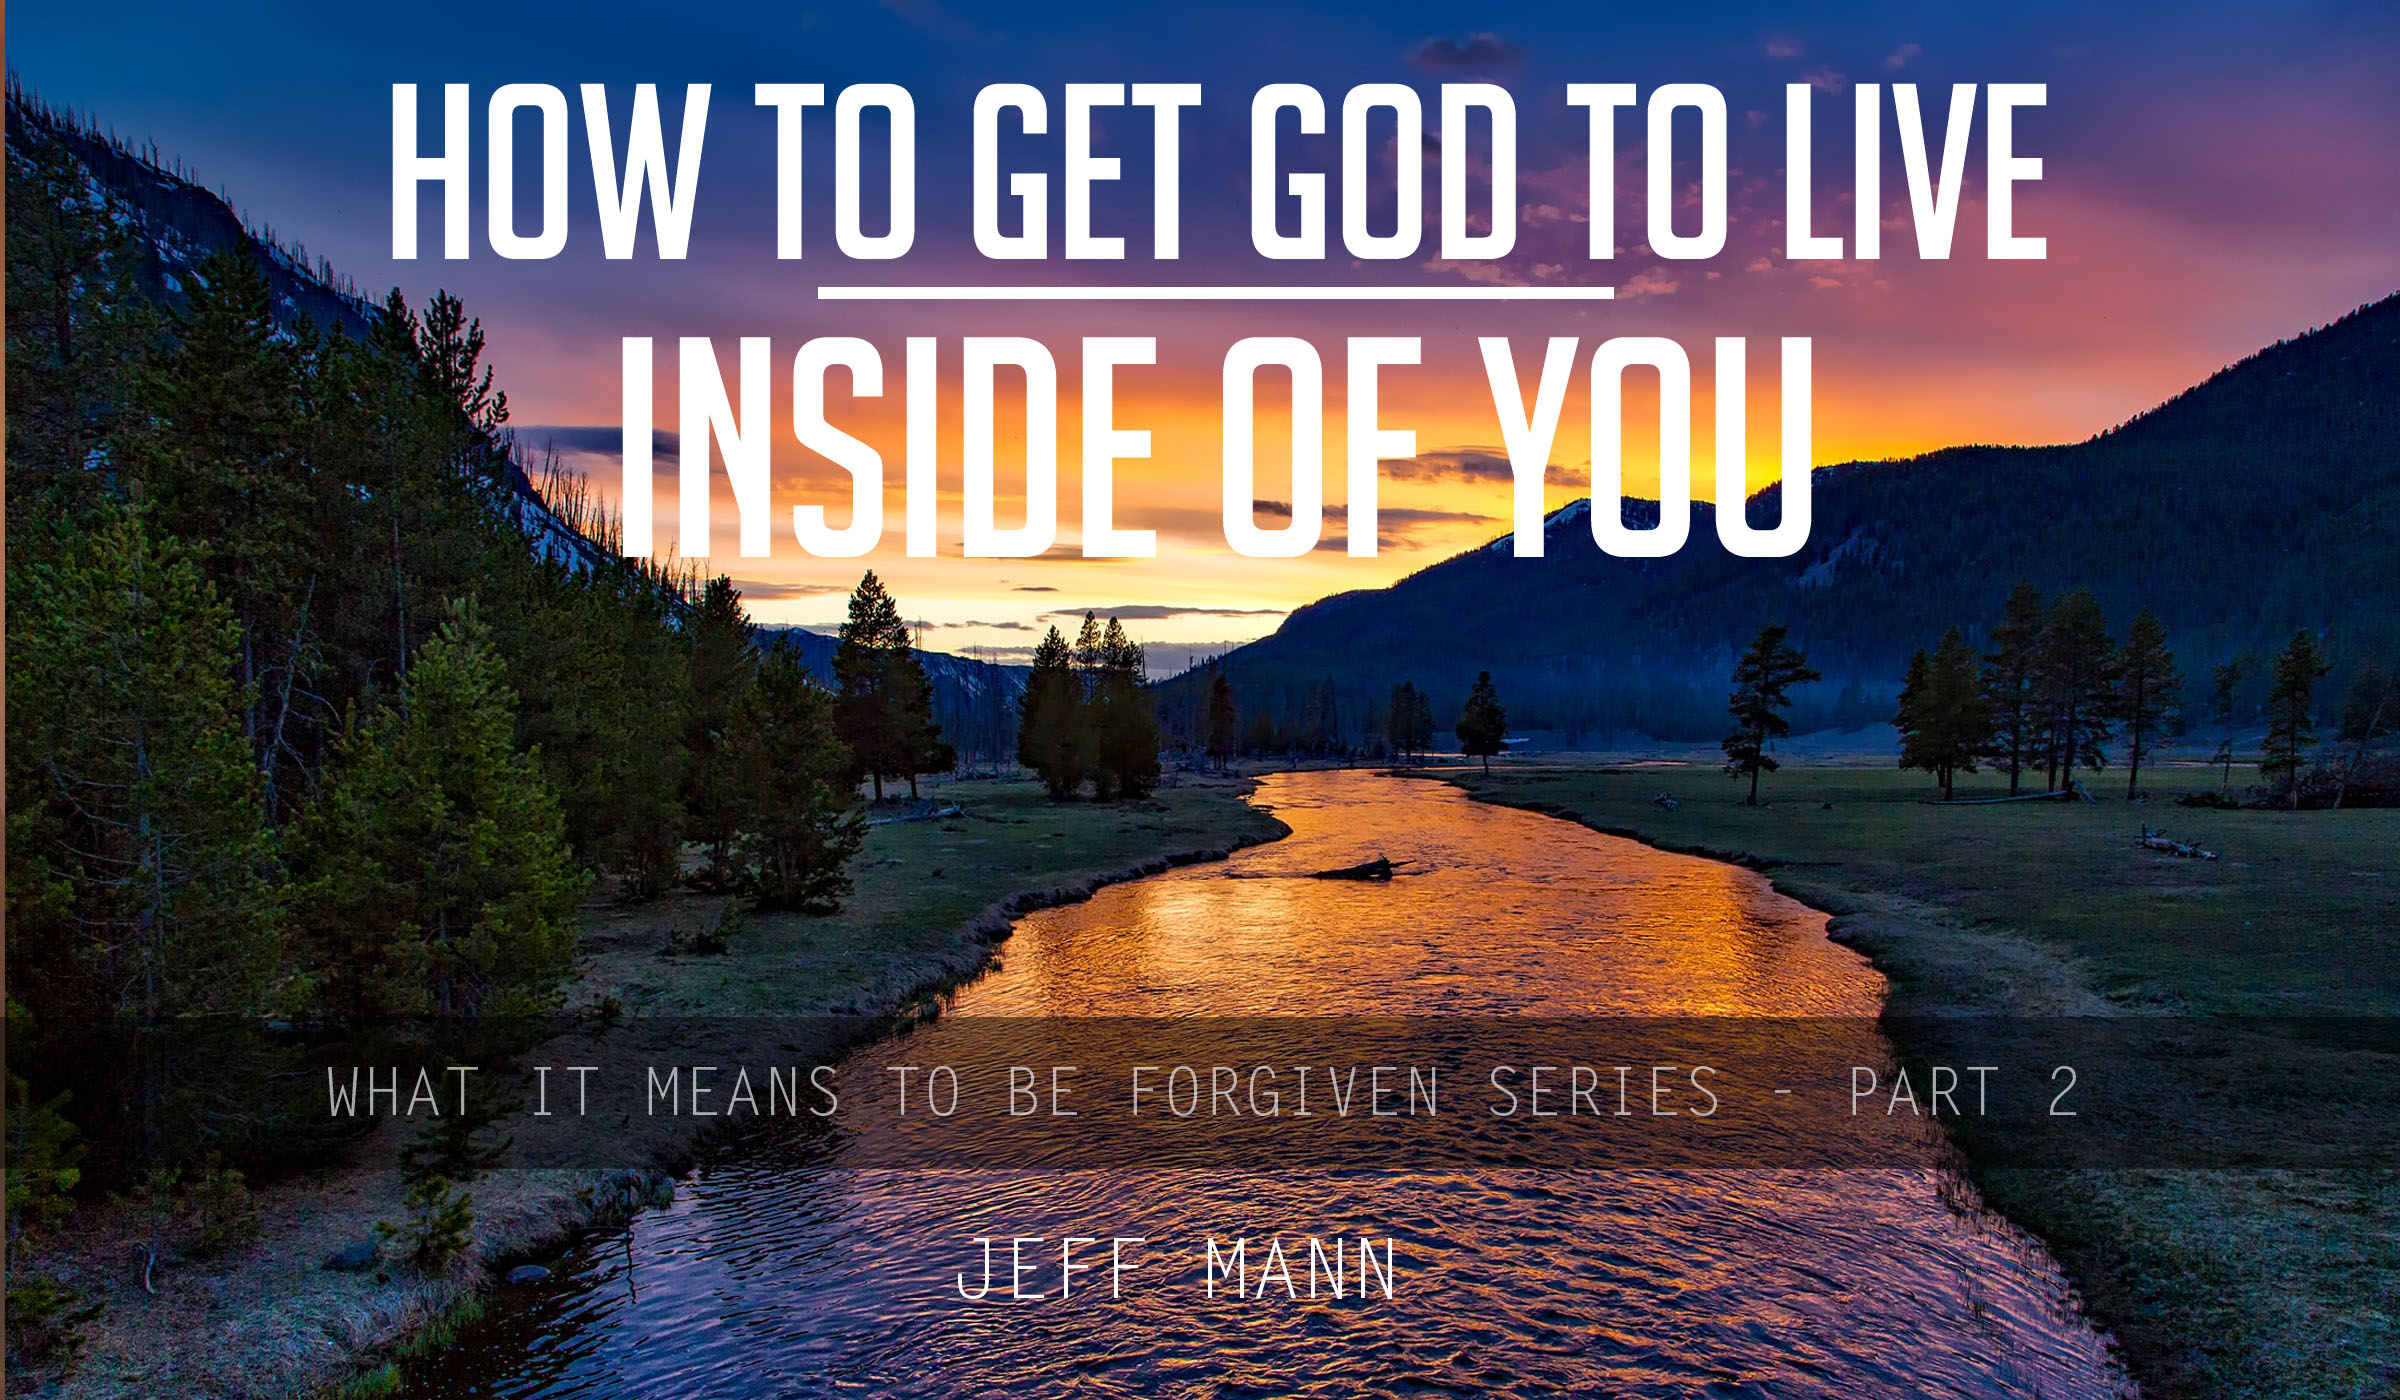 How to get God to live inside of you